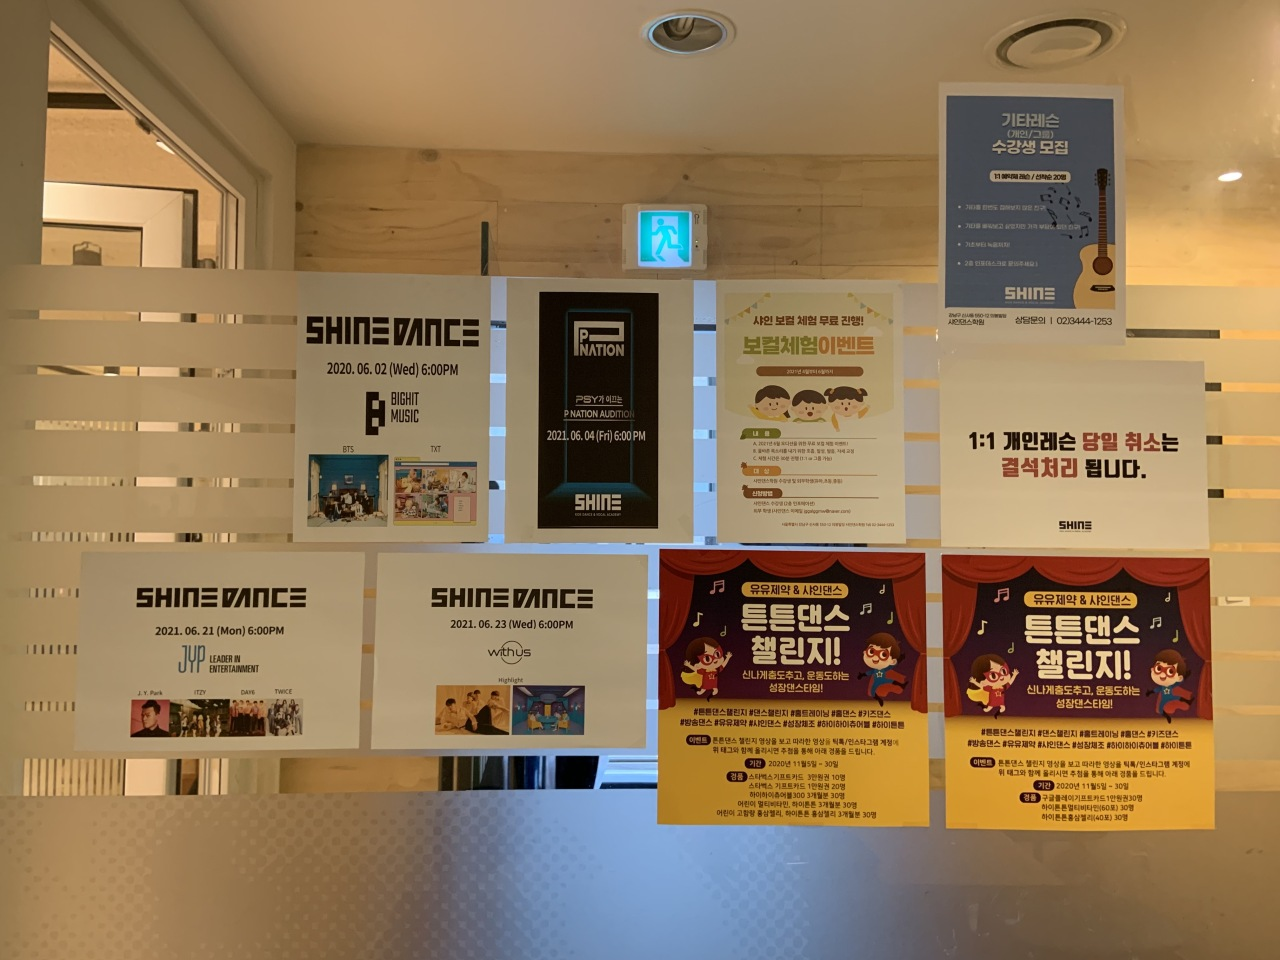 Audition dates for Korean entertainment companies are displayed on posters. (Park Jun-hee/The Korea Herald)